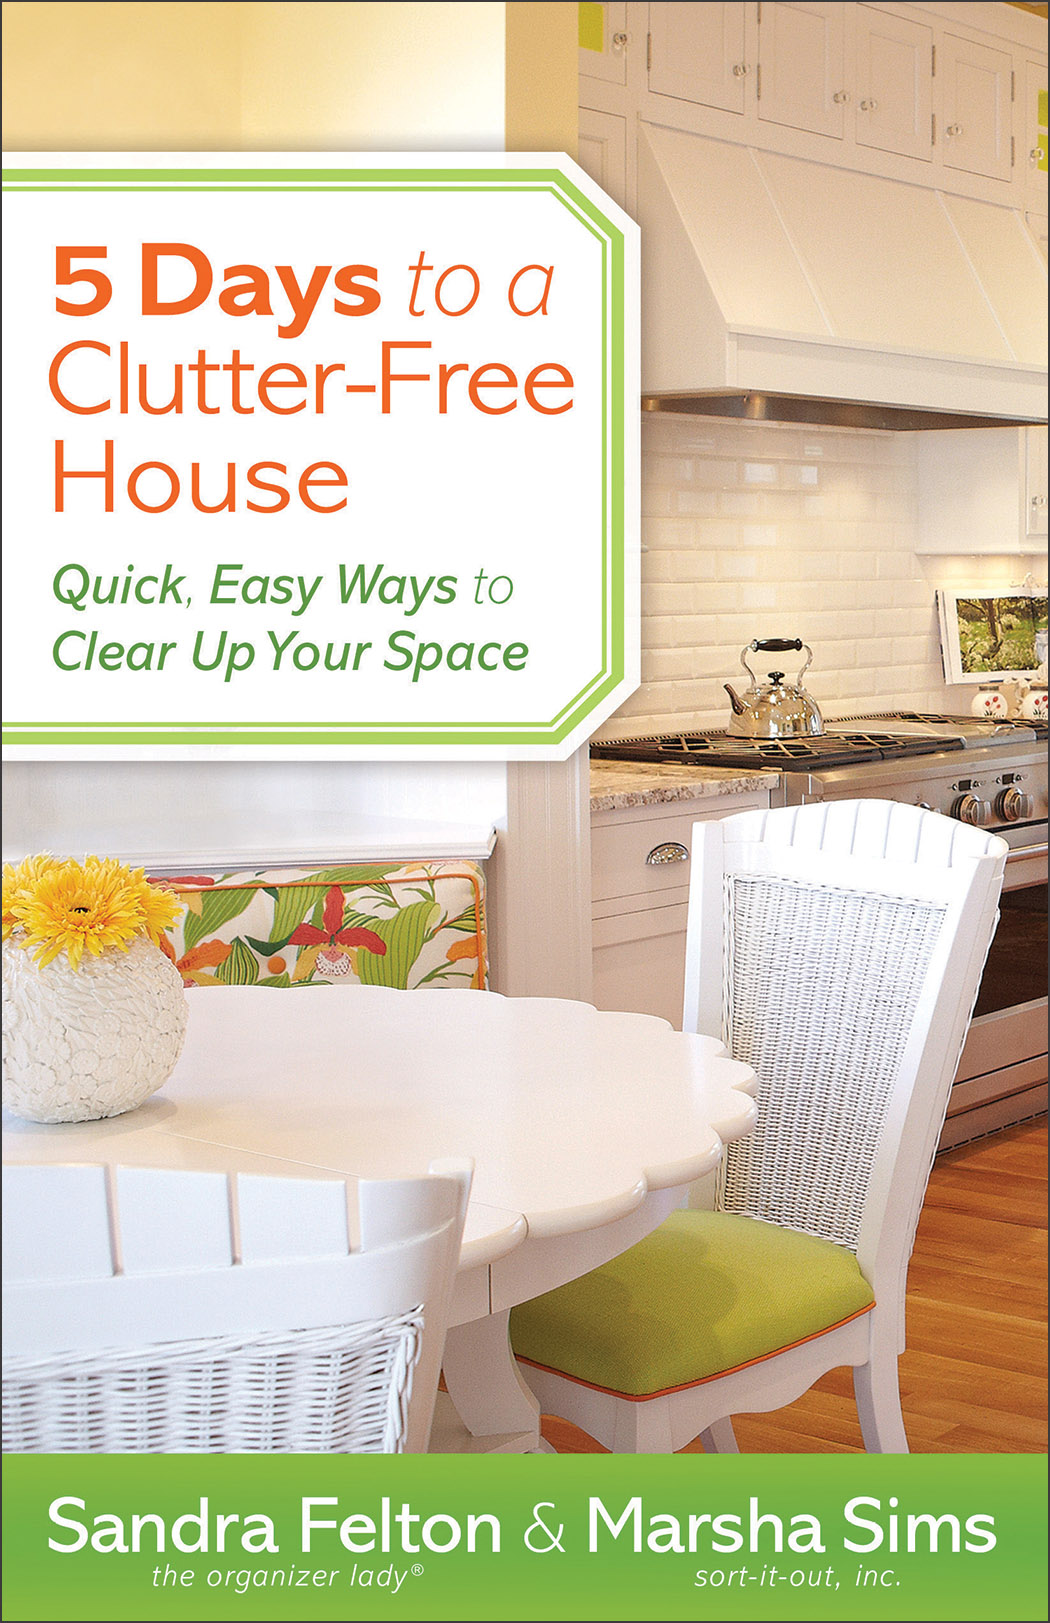 5 days to a clutter free house baker publishing group 5 days to a clutter free house fandeluxe Ebook collections